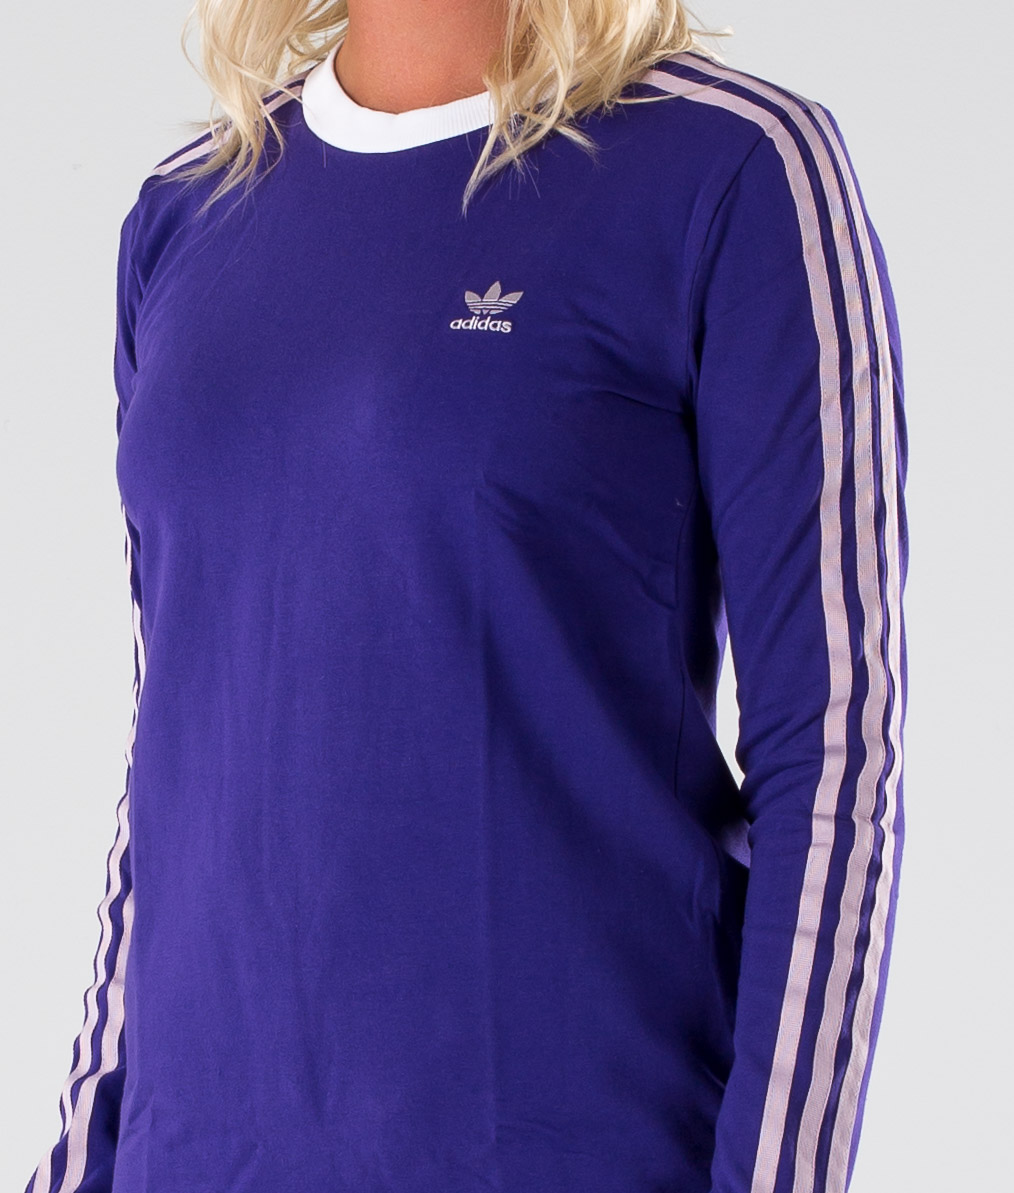 Adidas Originals 3 Stripes Long Sleeve T shirt Collegiate Purple